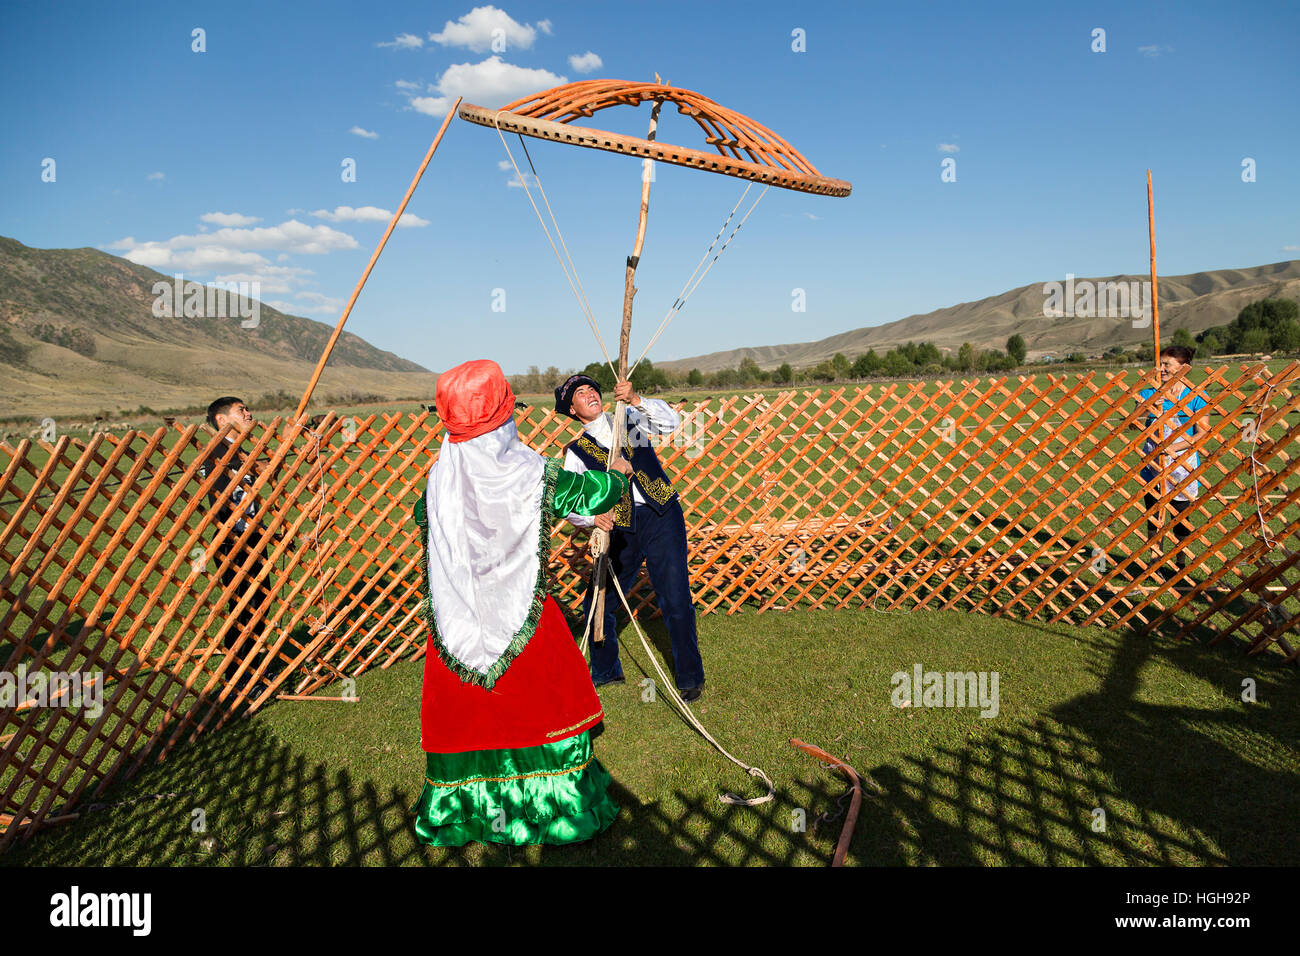 Nomadic people in national costumes building a yurt and holding the crown of the dome of a yurt known as Shangyrak - Stock Image